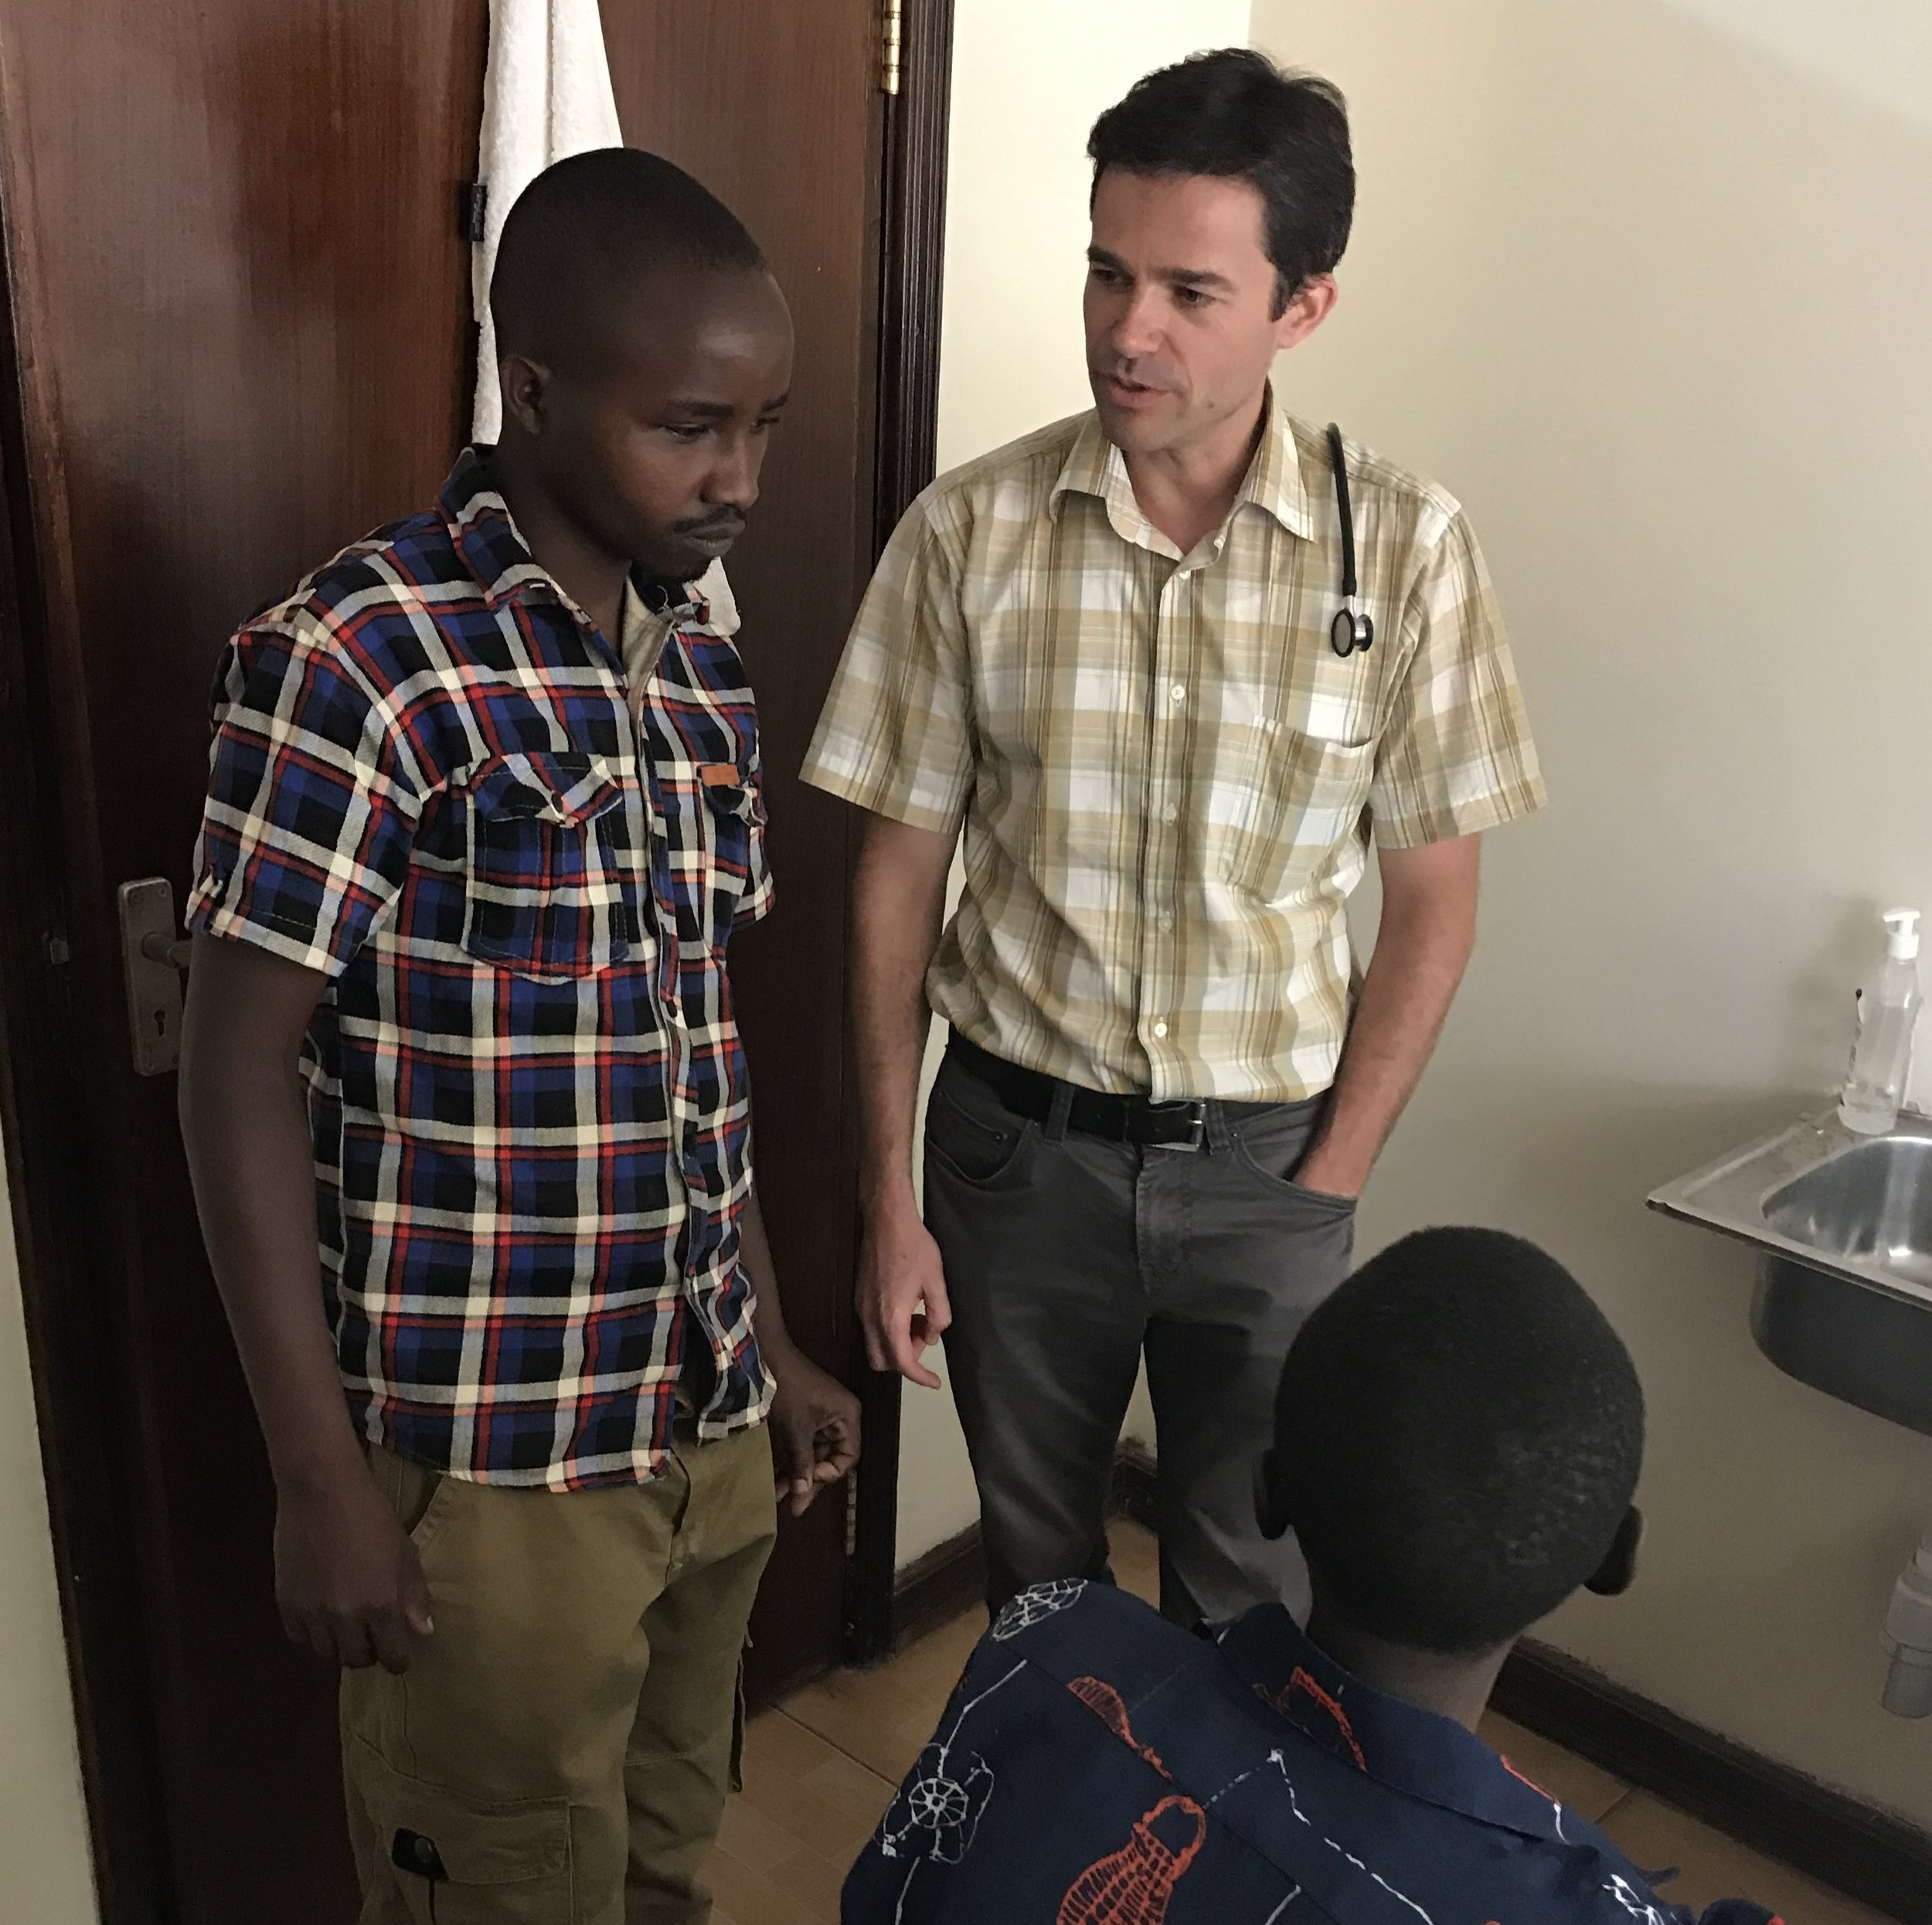 Dr. Michael introducing Alfred, our Community Health Worker, to a 26-year-old diabetic patient who will begin insulin treatment. Alfred will be visiting him on a weekly basis for support and to ensure adherence to the treatment strategy.